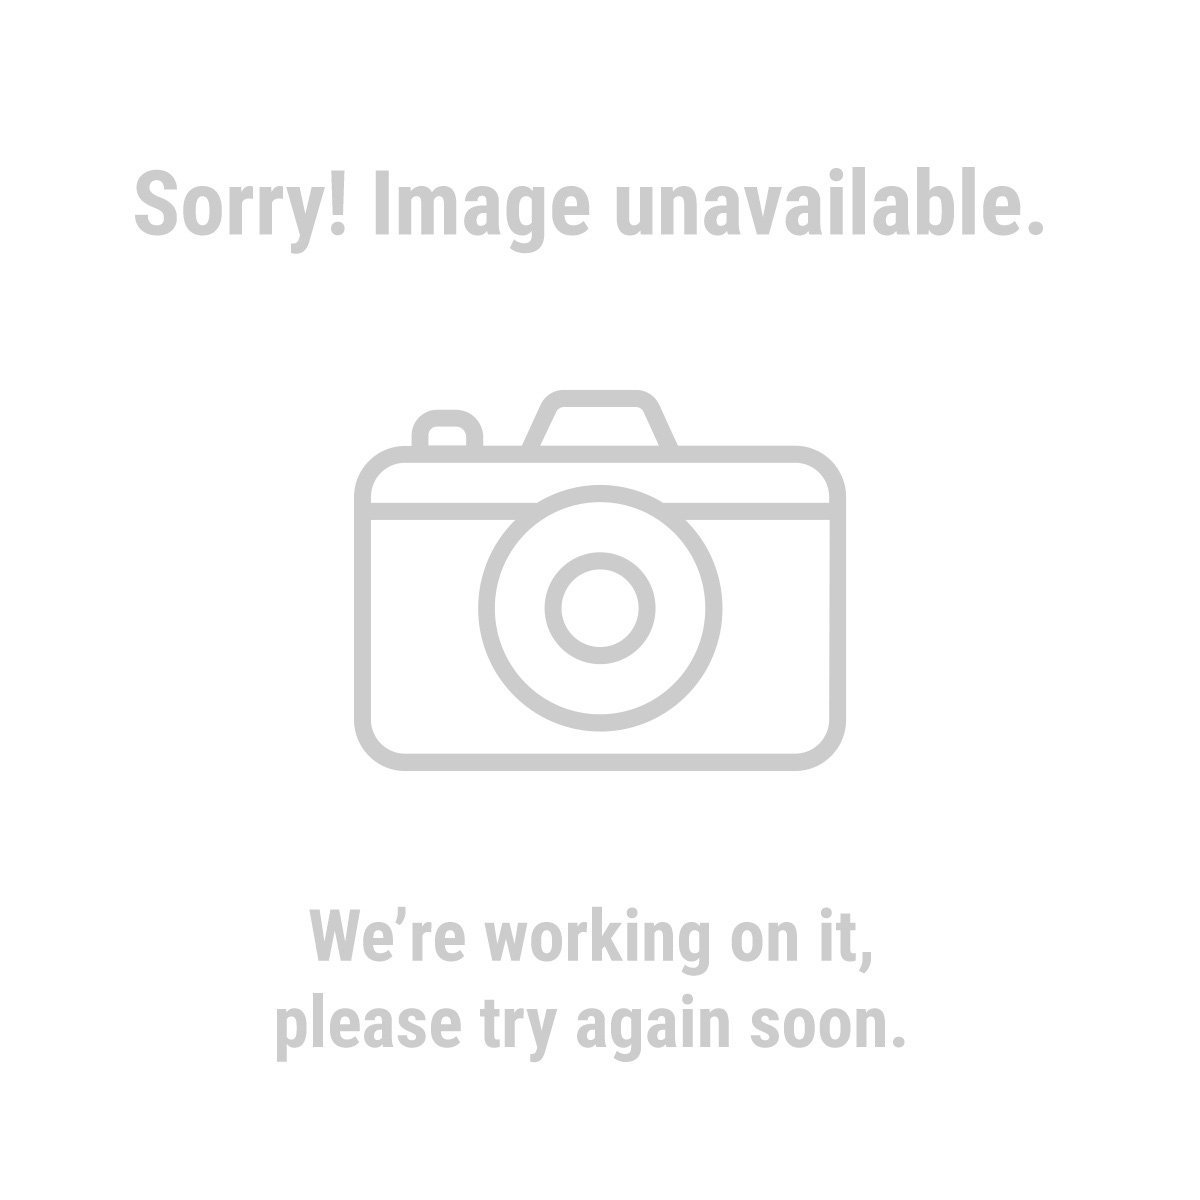 Western Safety 62262 Yellow Rain Suit, Large 2 Pc